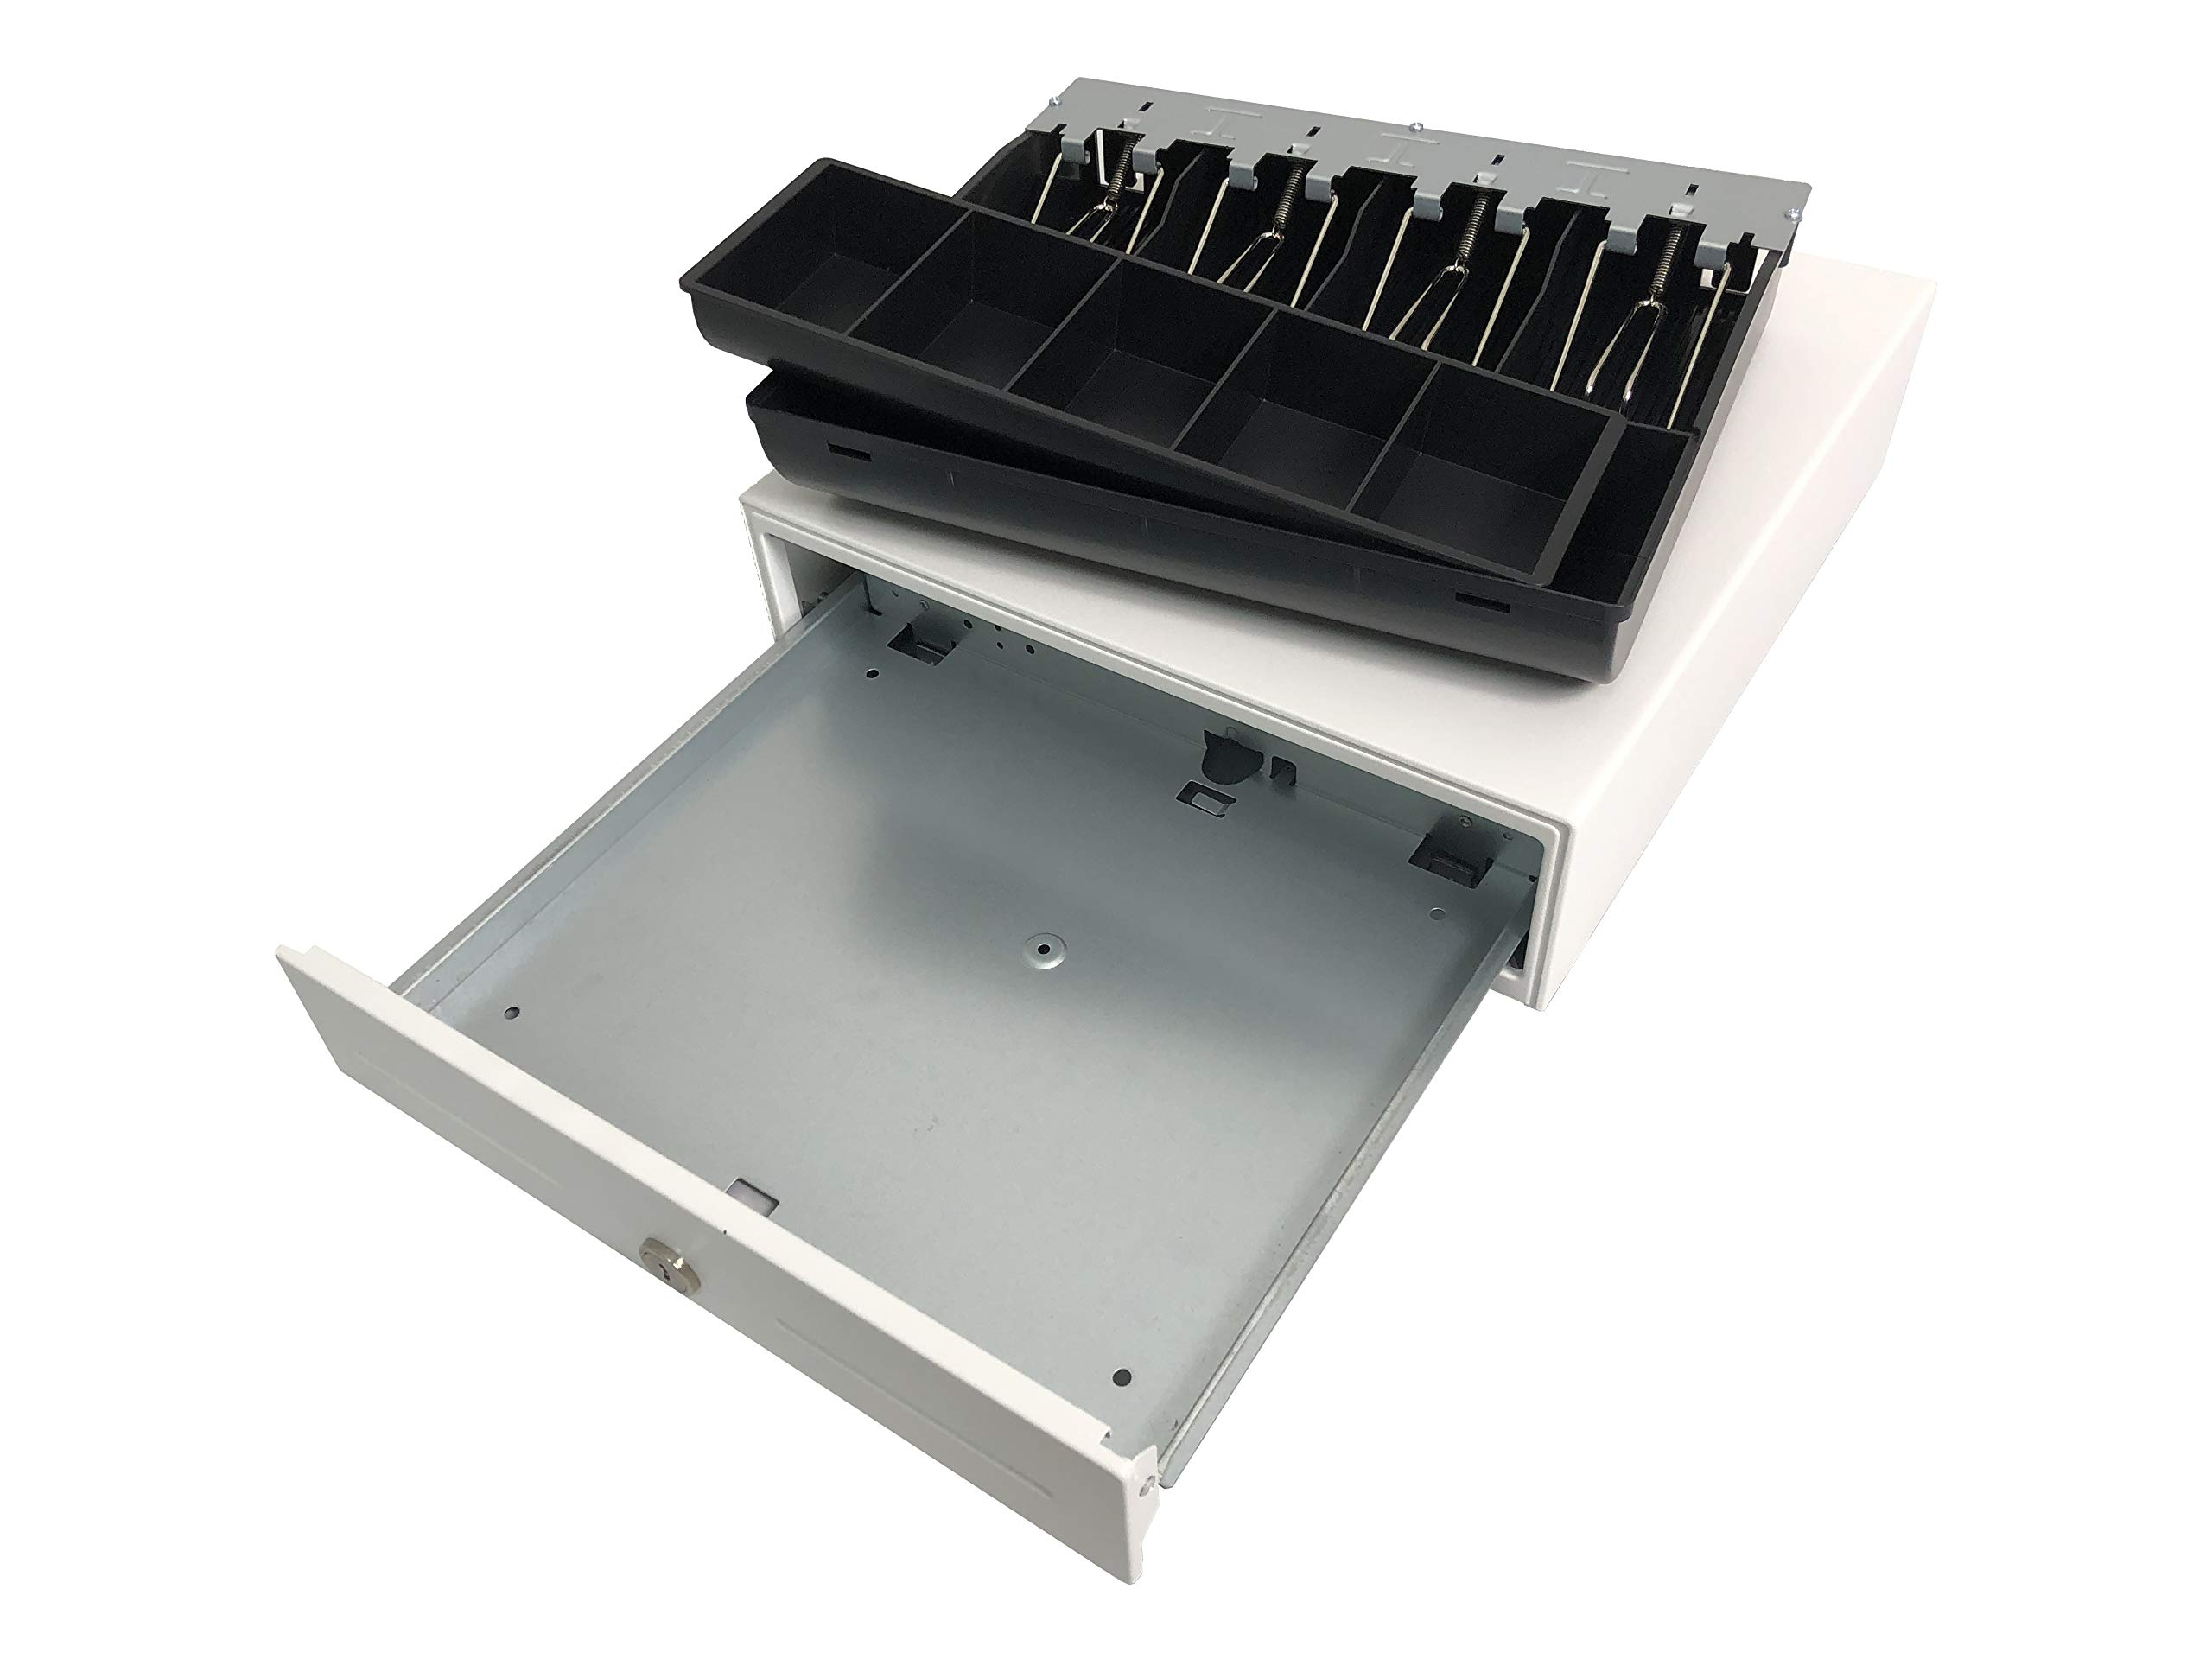 HK SYSTEMS 13'' Heavy Duty Compact White Manual Push-Open Cash Drawer with 4 Bill /5 Coin Till by HK SYSTEMS (Image #5)